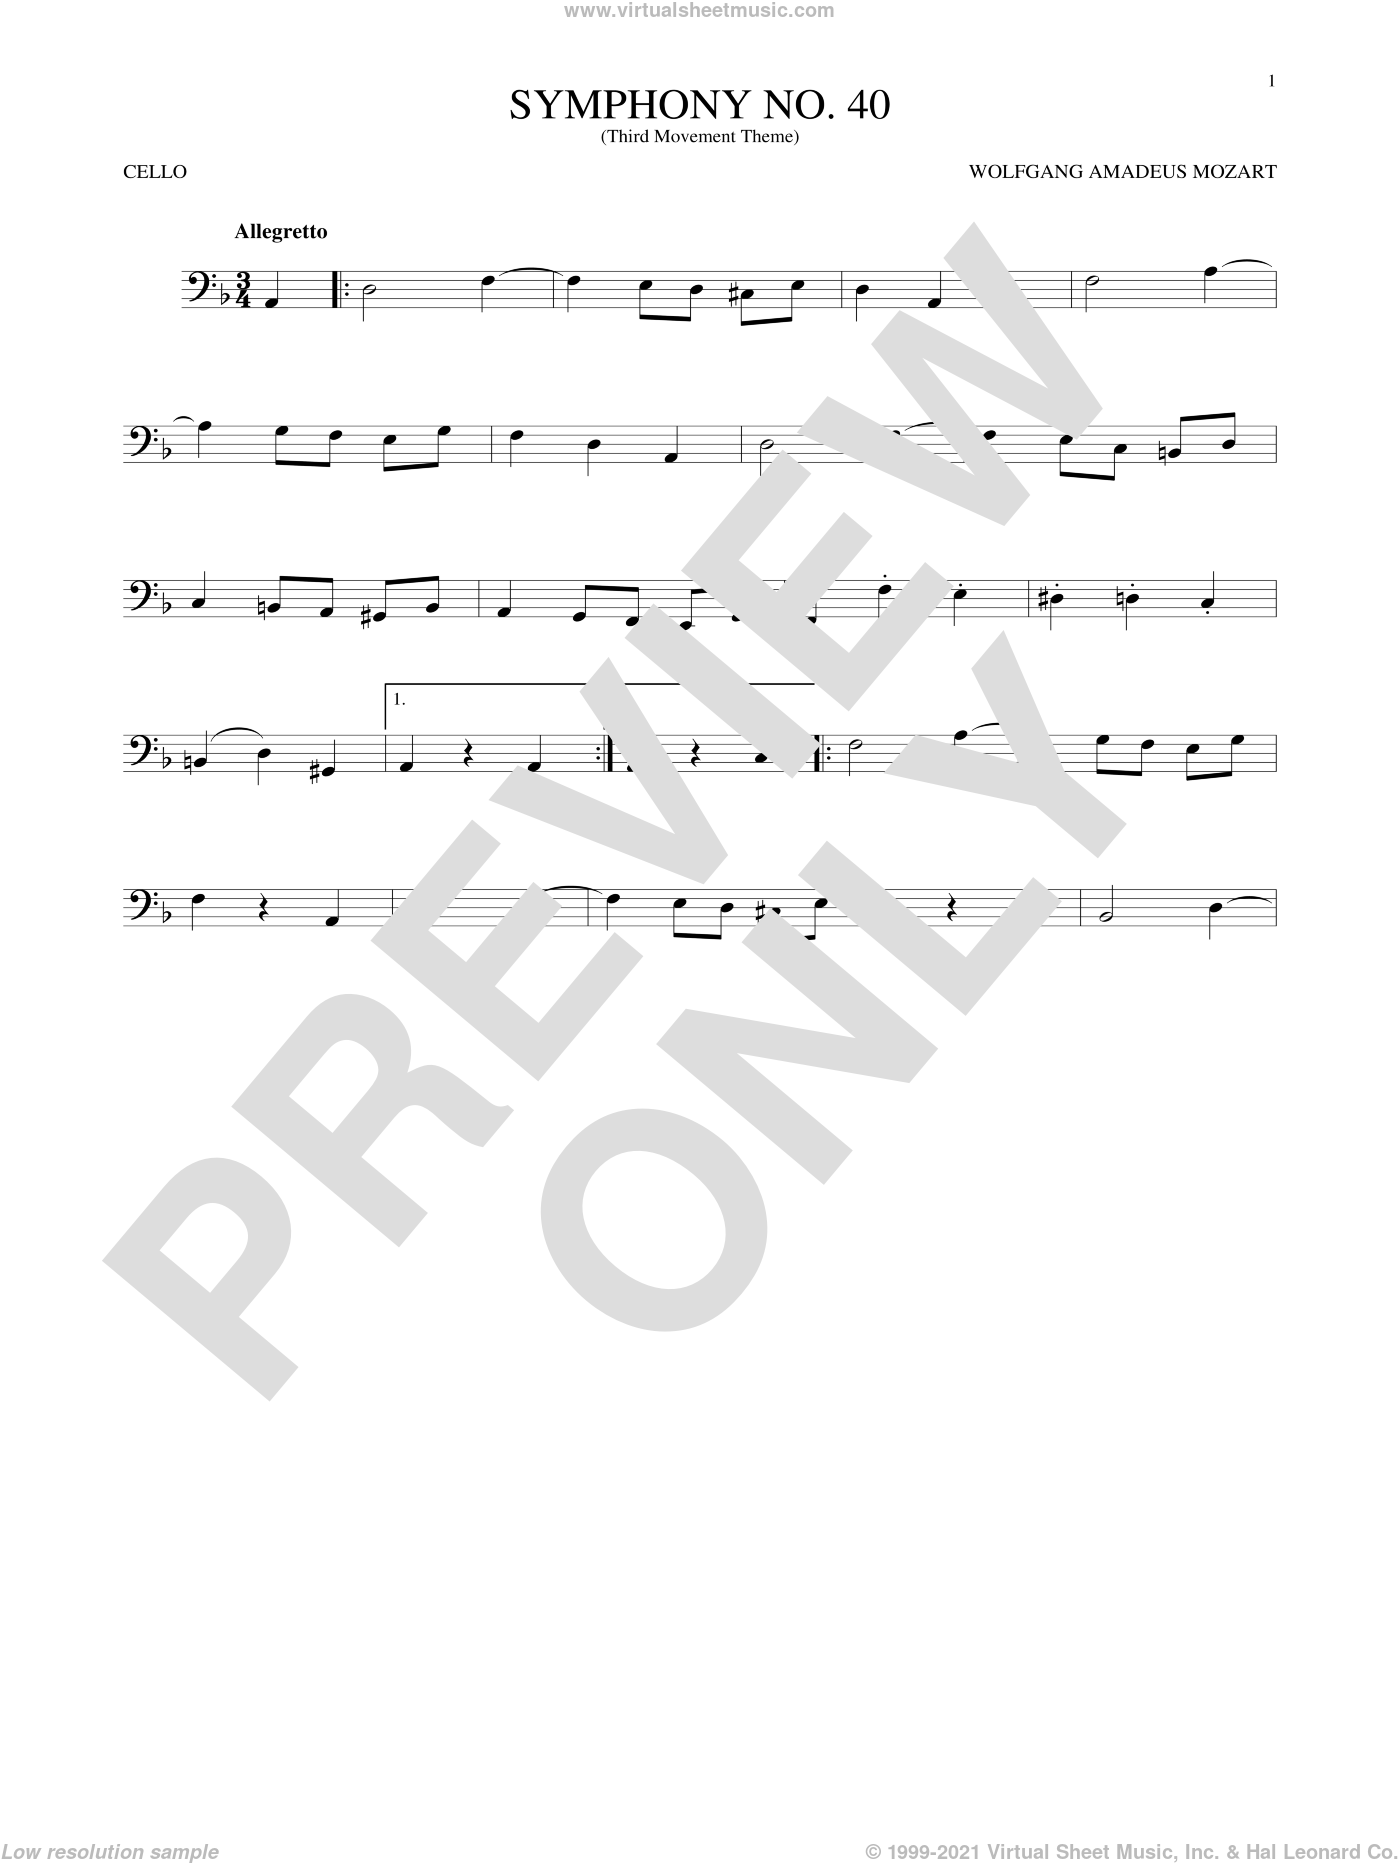 Symphony No. 40 In G Minor, Third Movement ('Minuet') sheet music for cello solo by Wolfgang Amadeus Mozart, classical score, intermediate skill level